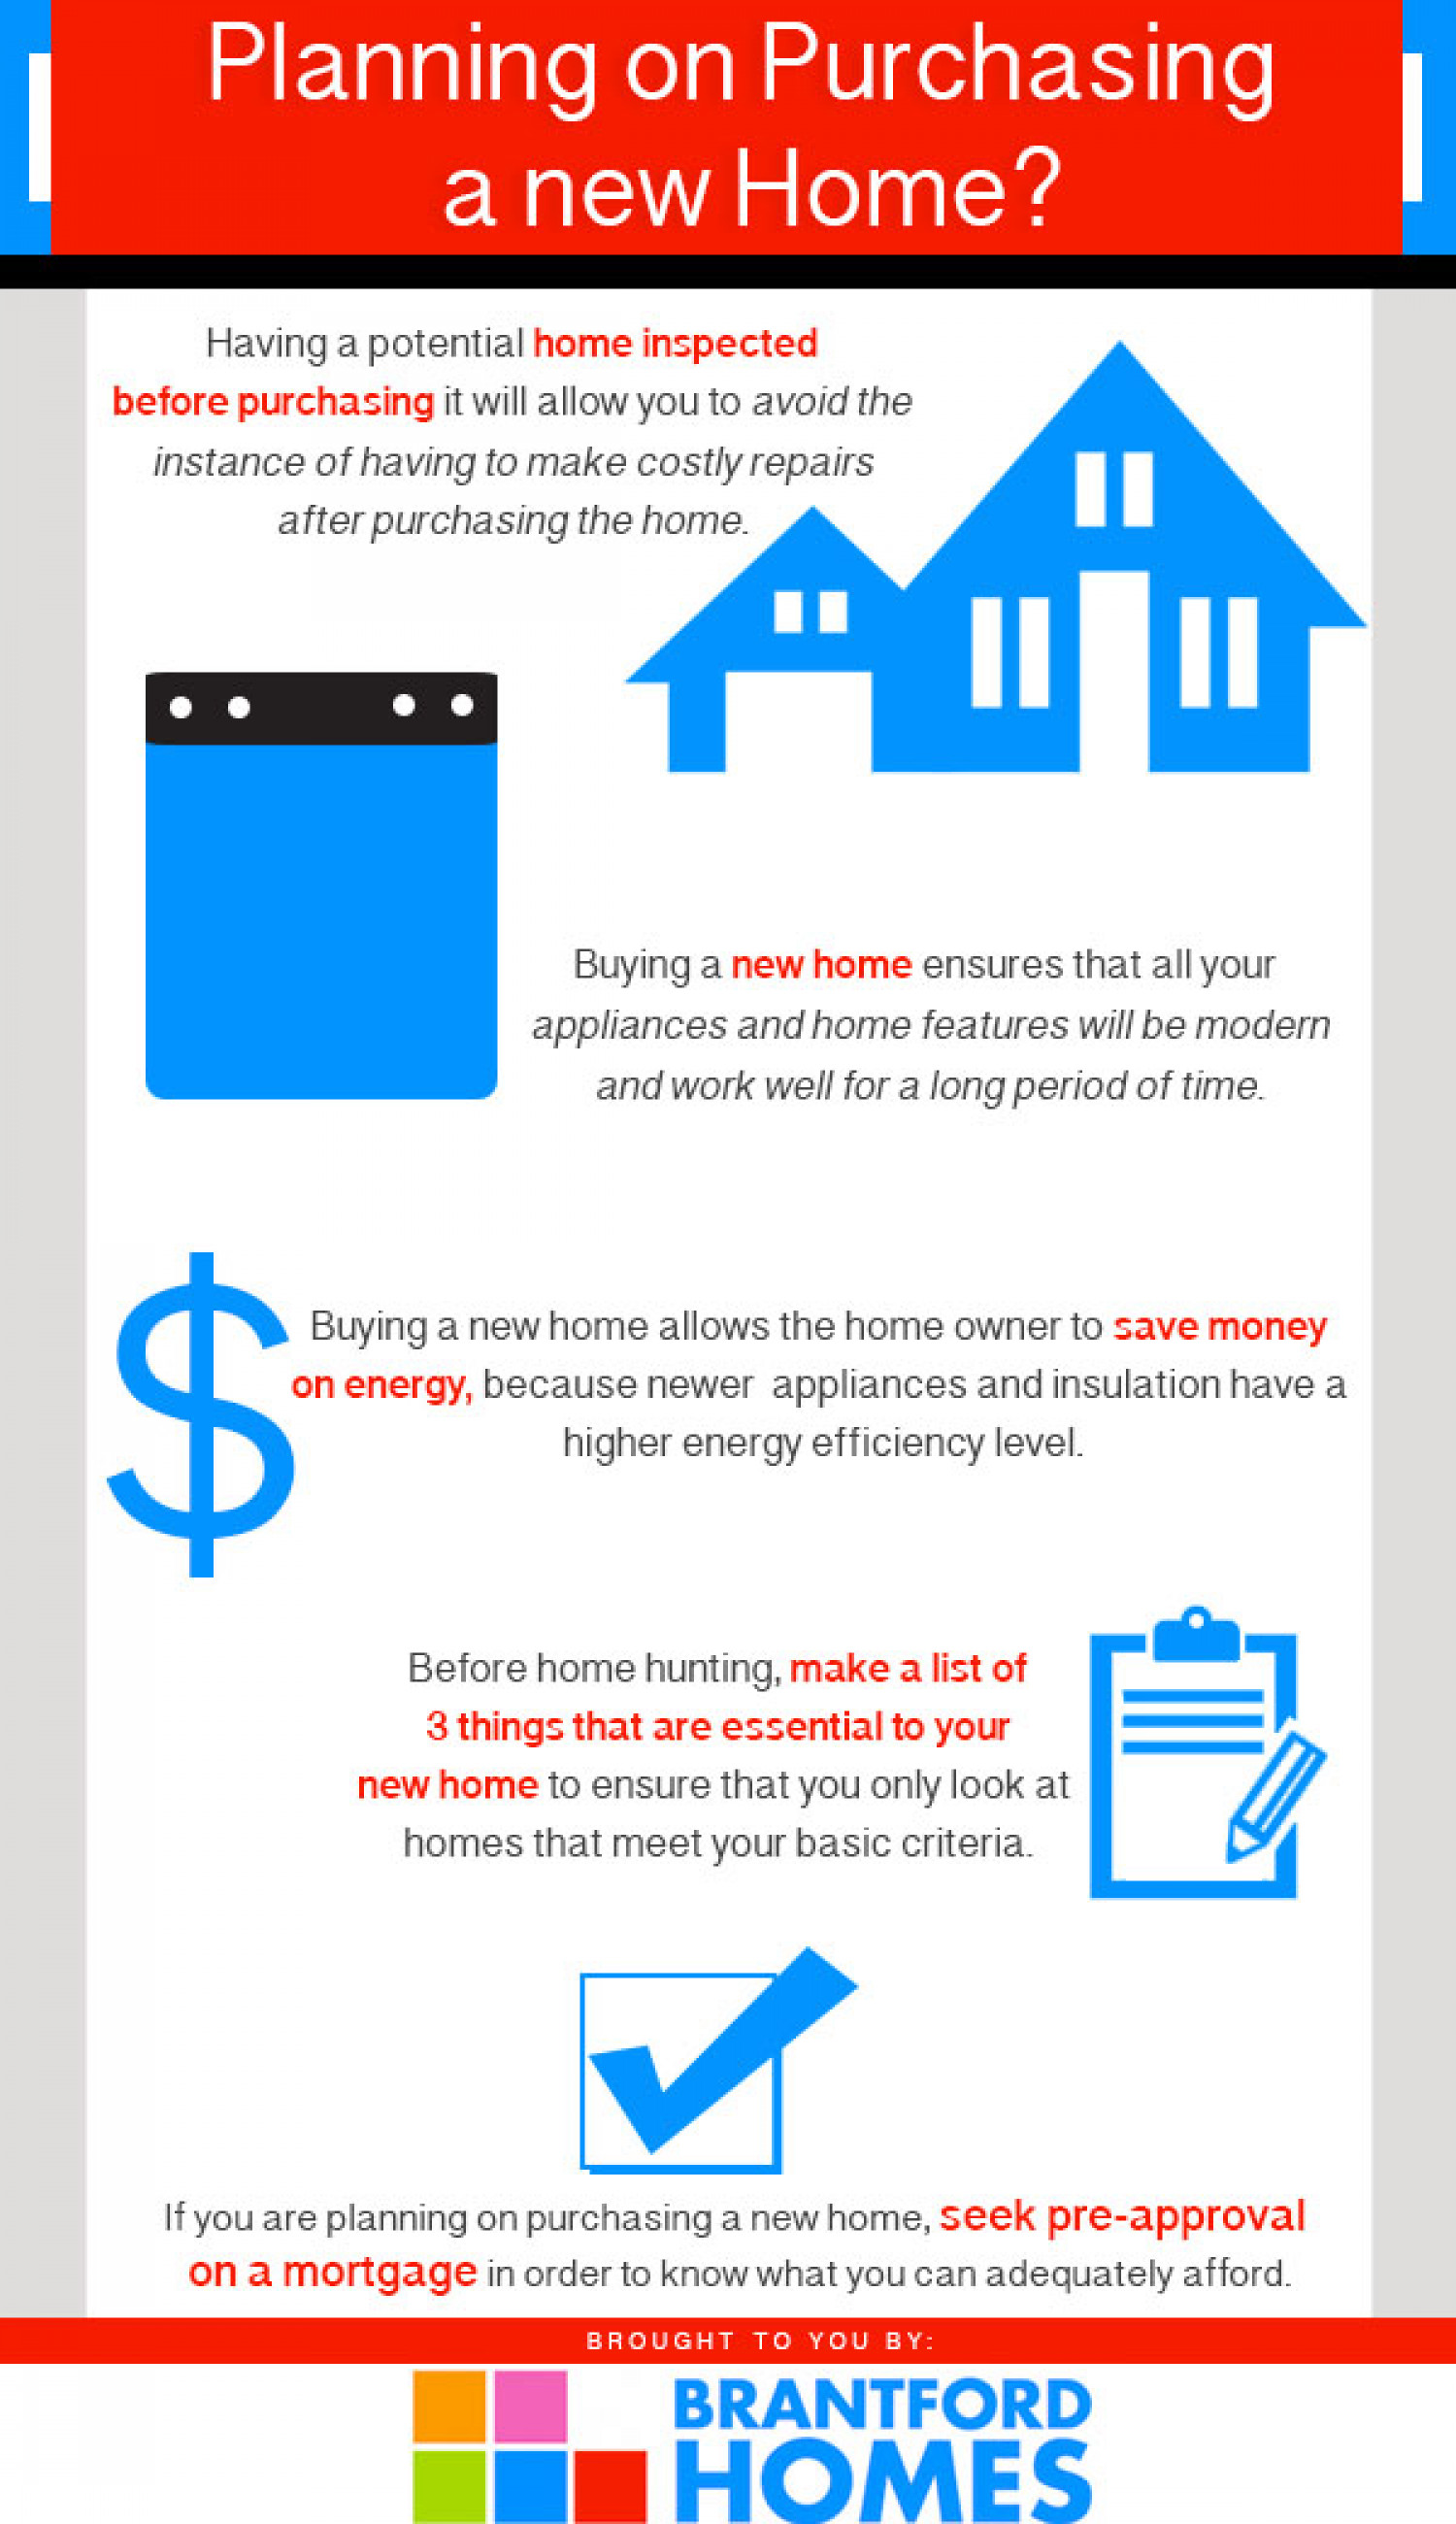 Planning on Purchasing a New Home Infographic